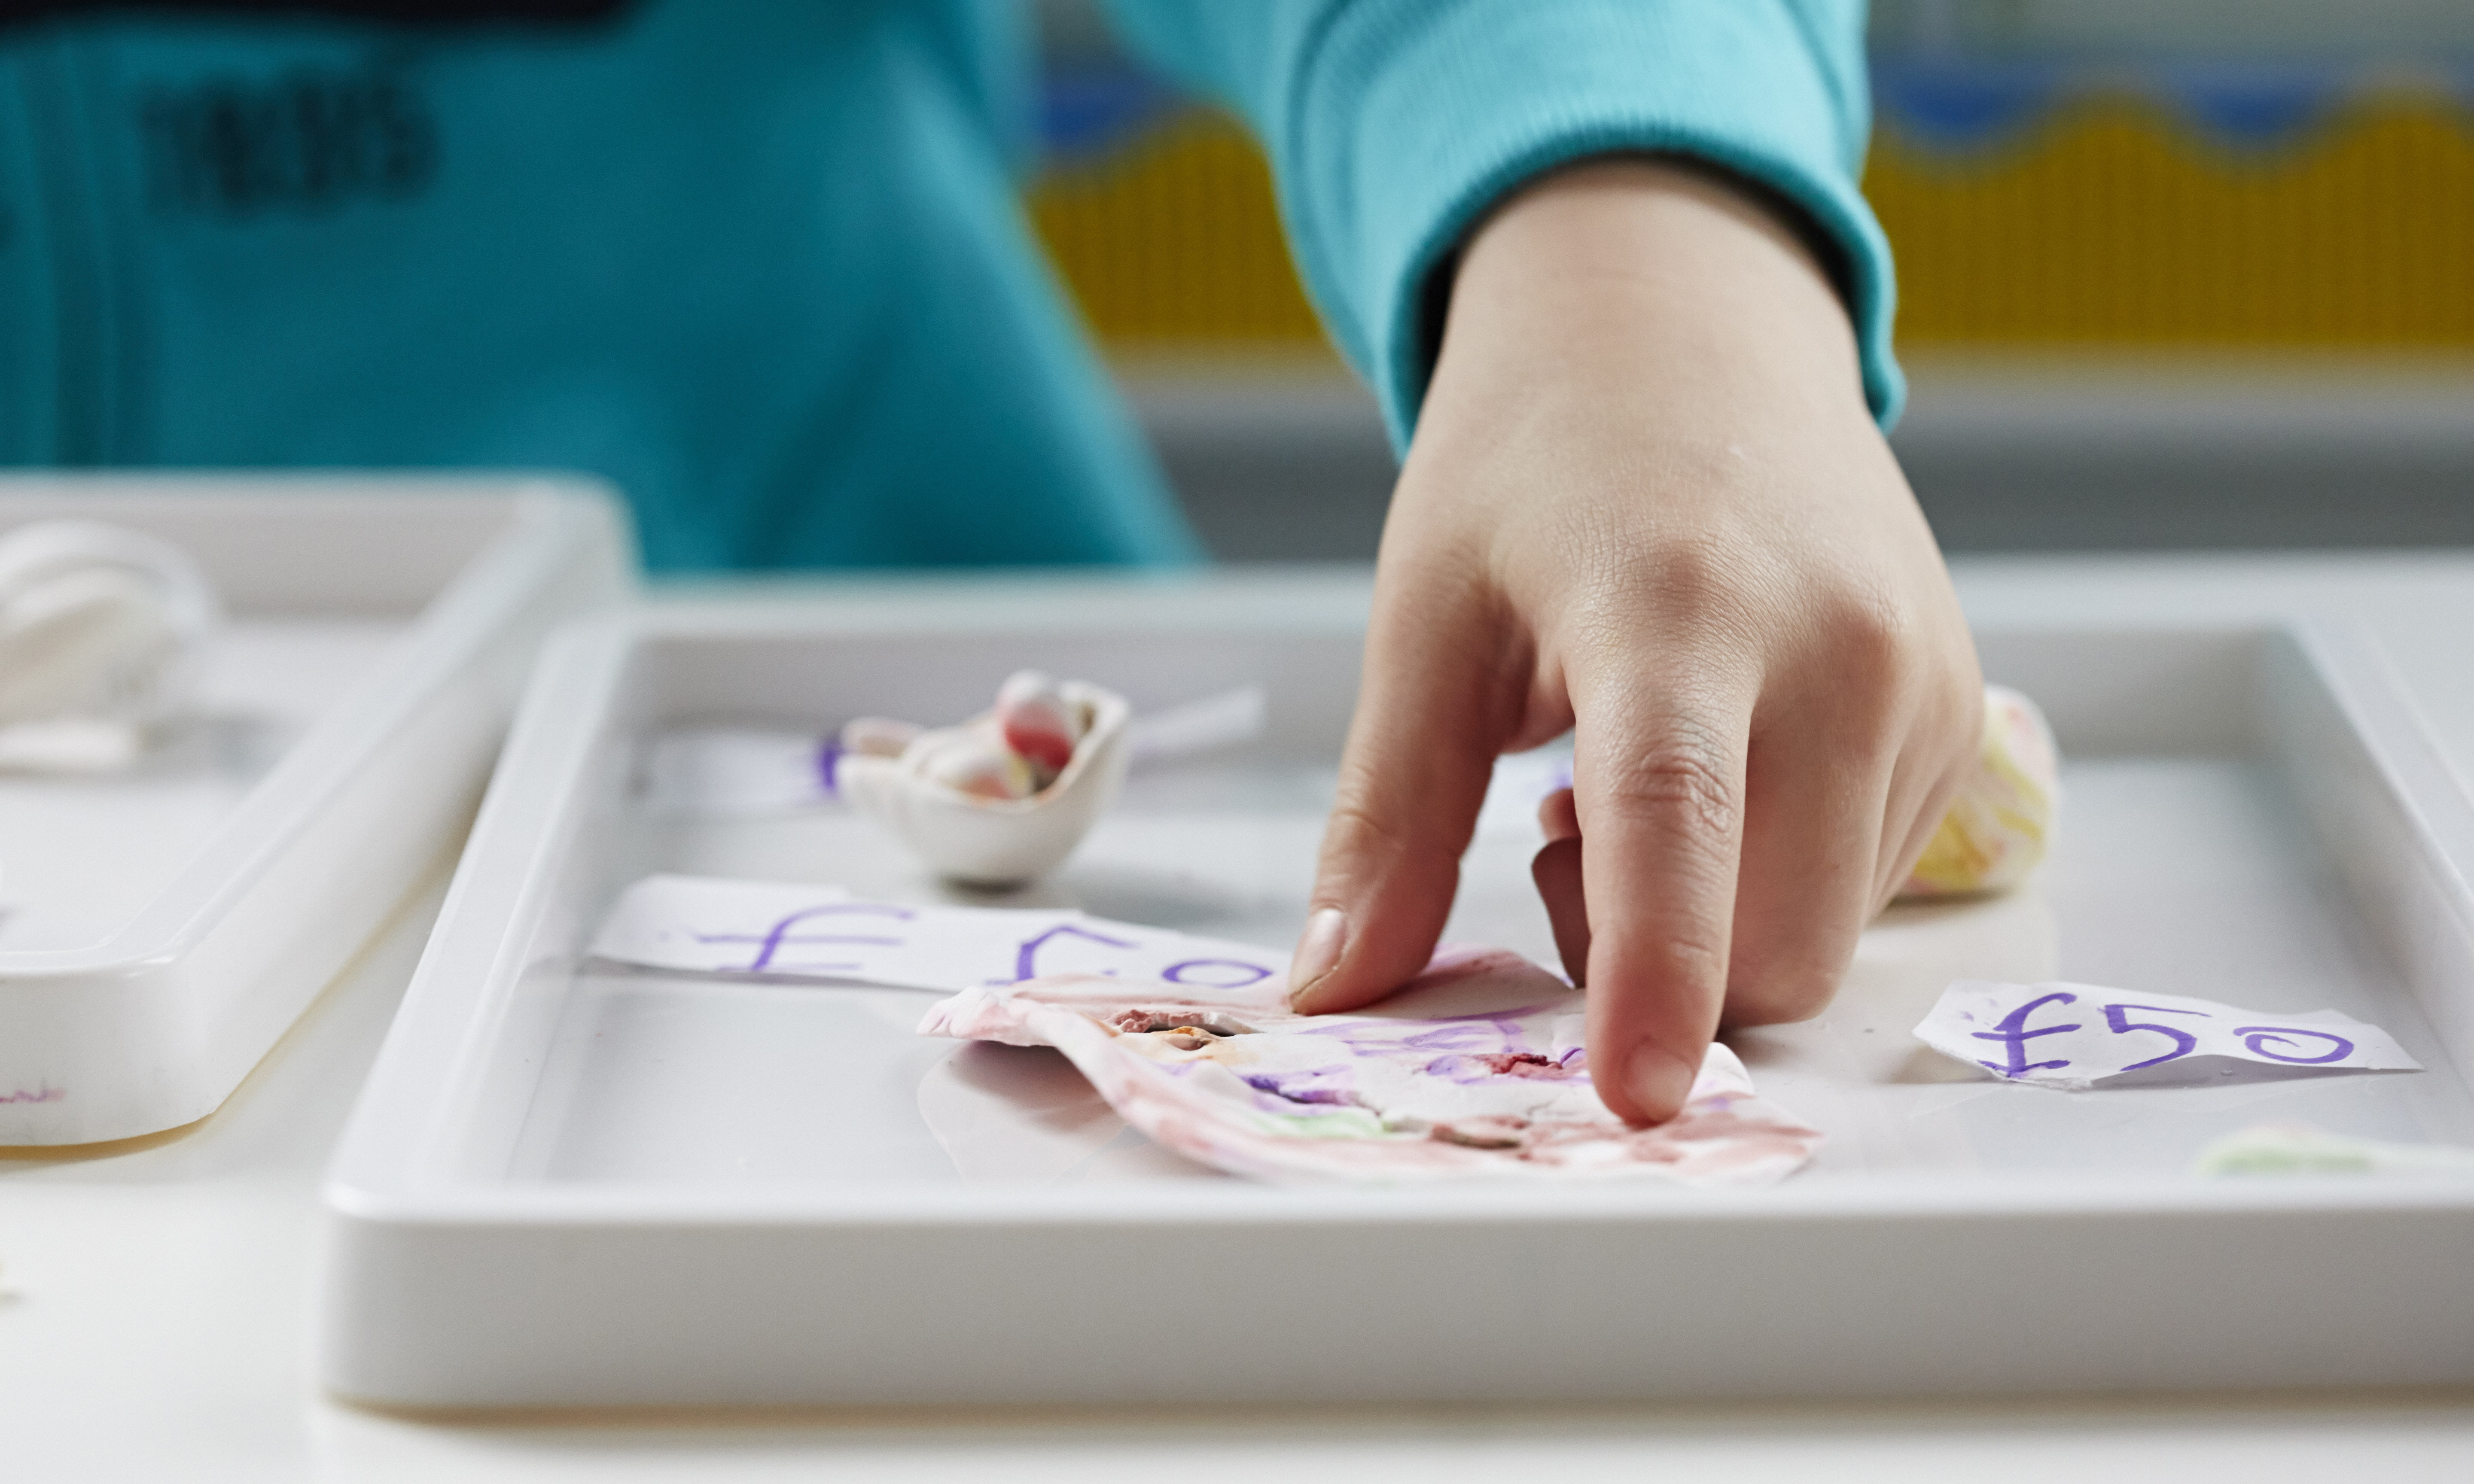 Image of child's hand moving paper